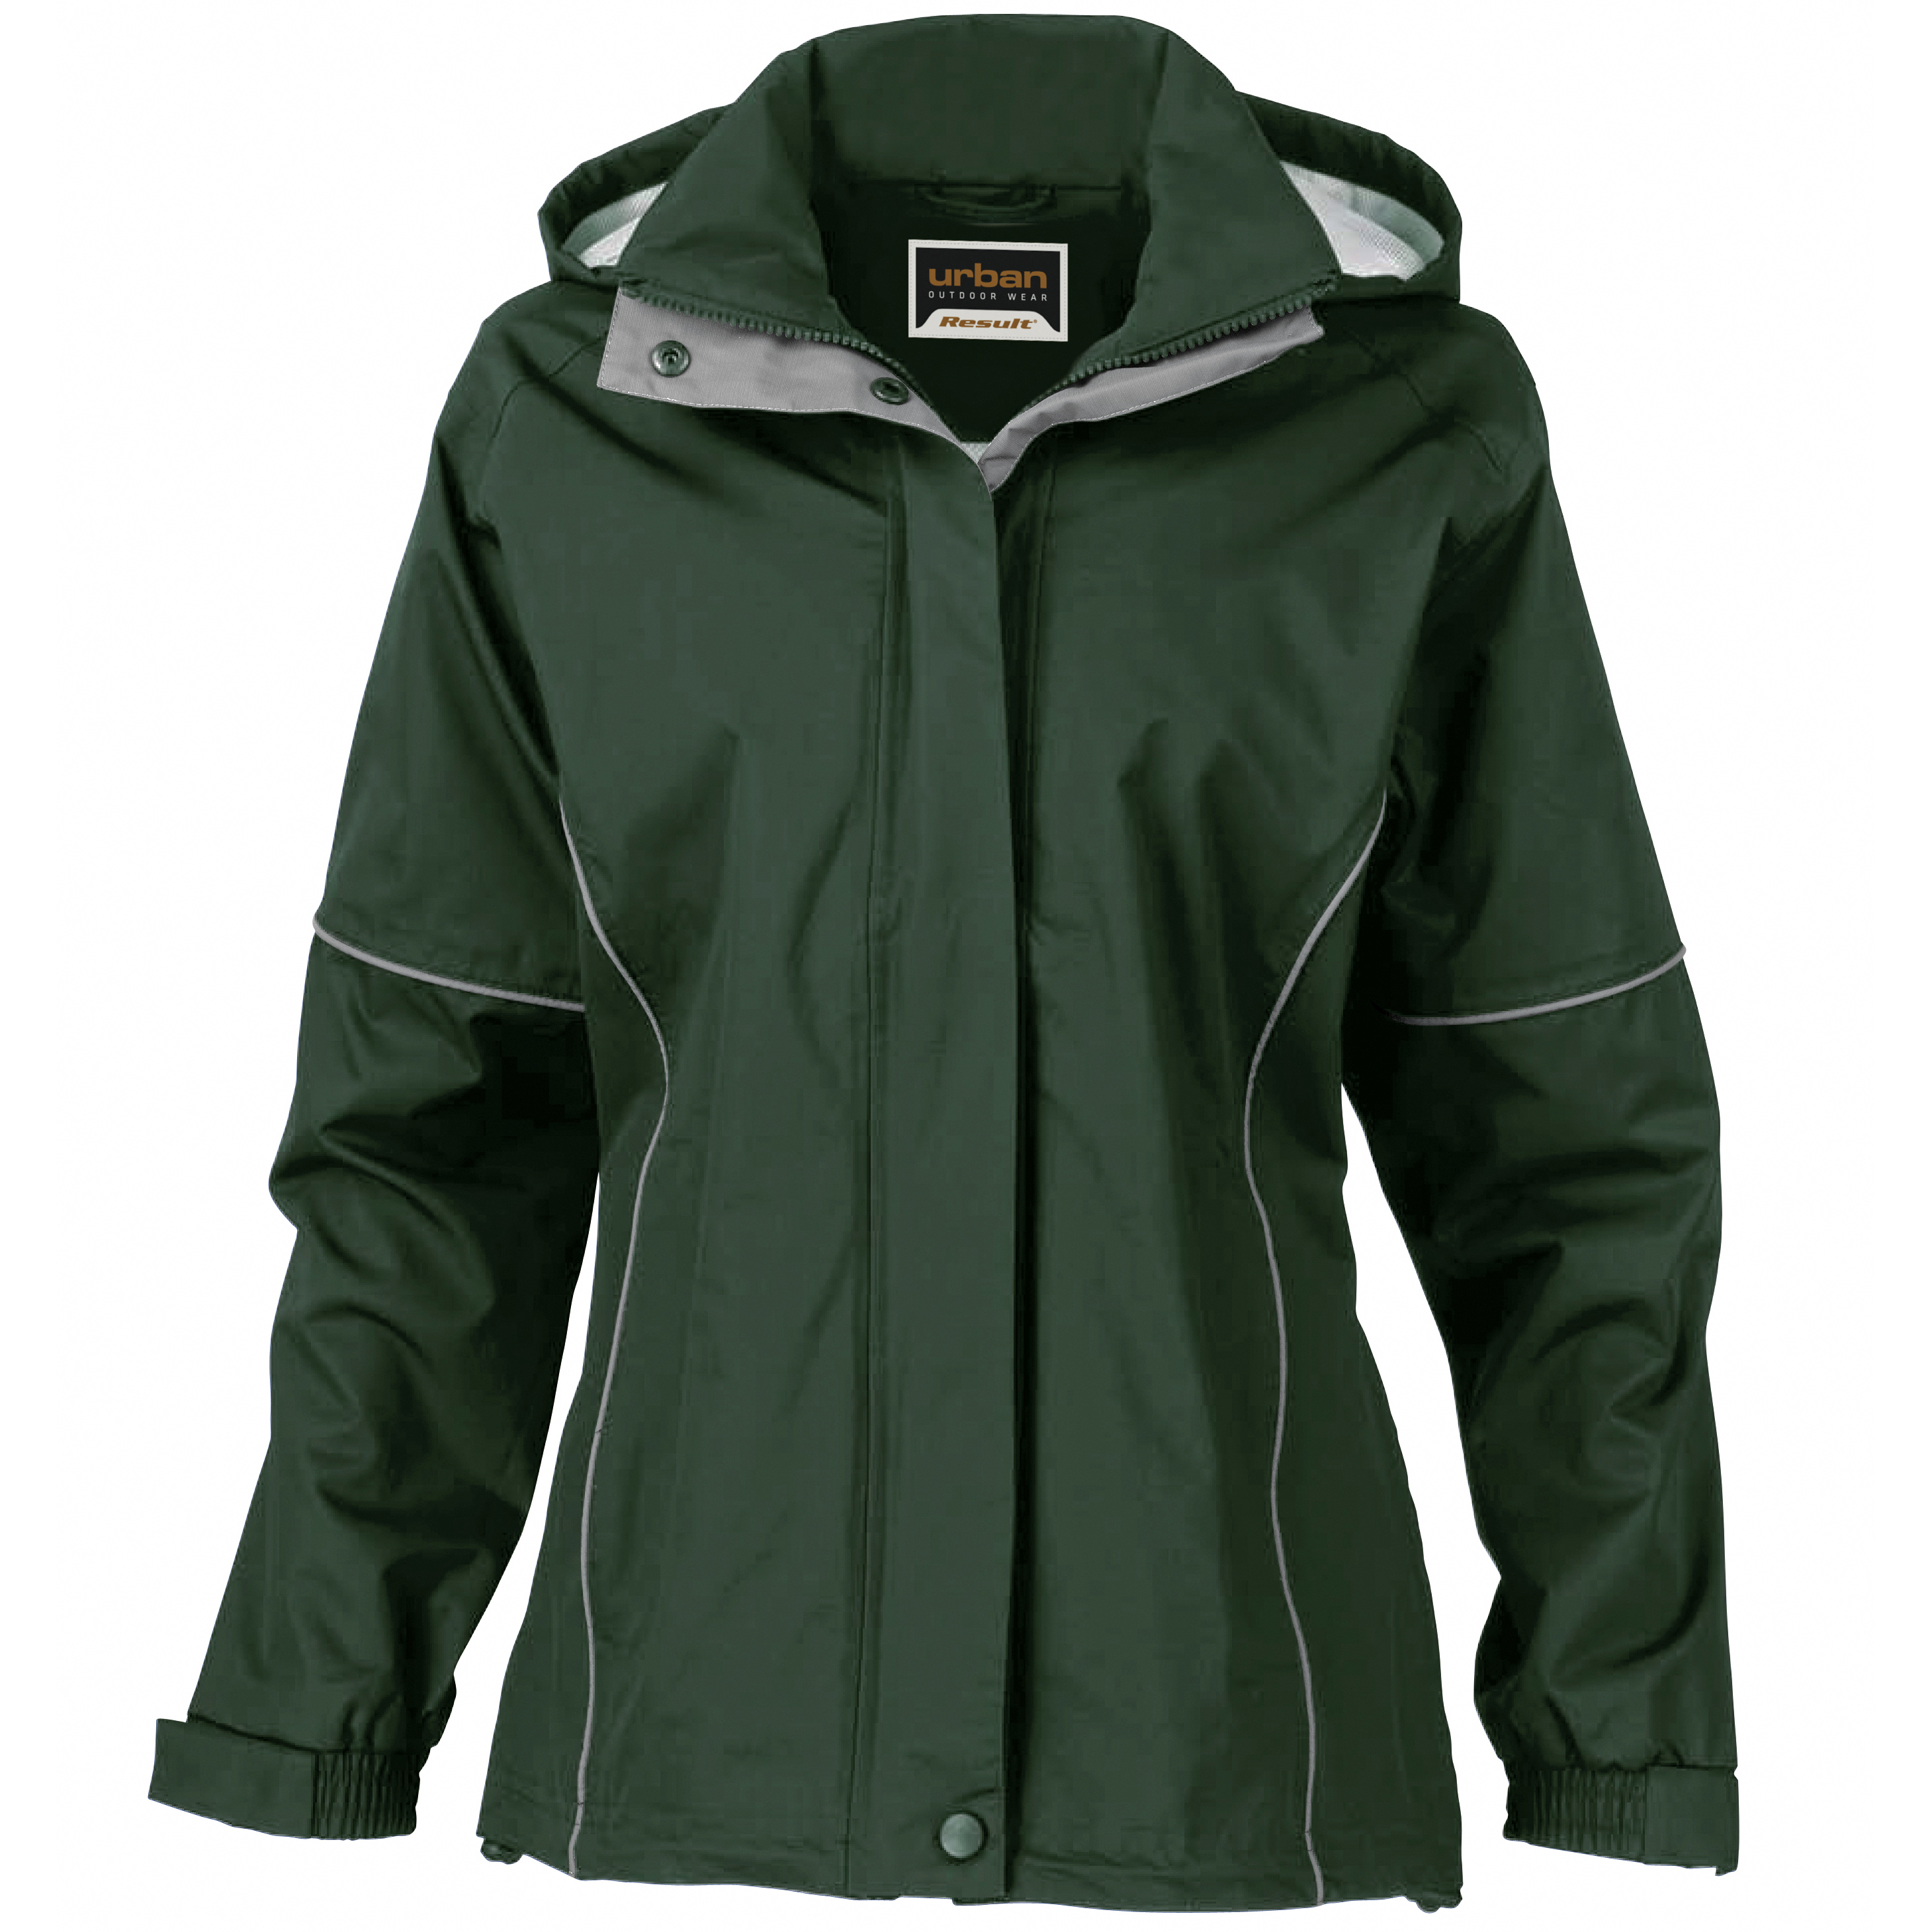 New RESULT Womens Ladies Casual Lightweight Technical Jacket 3 Colours Size 8-16